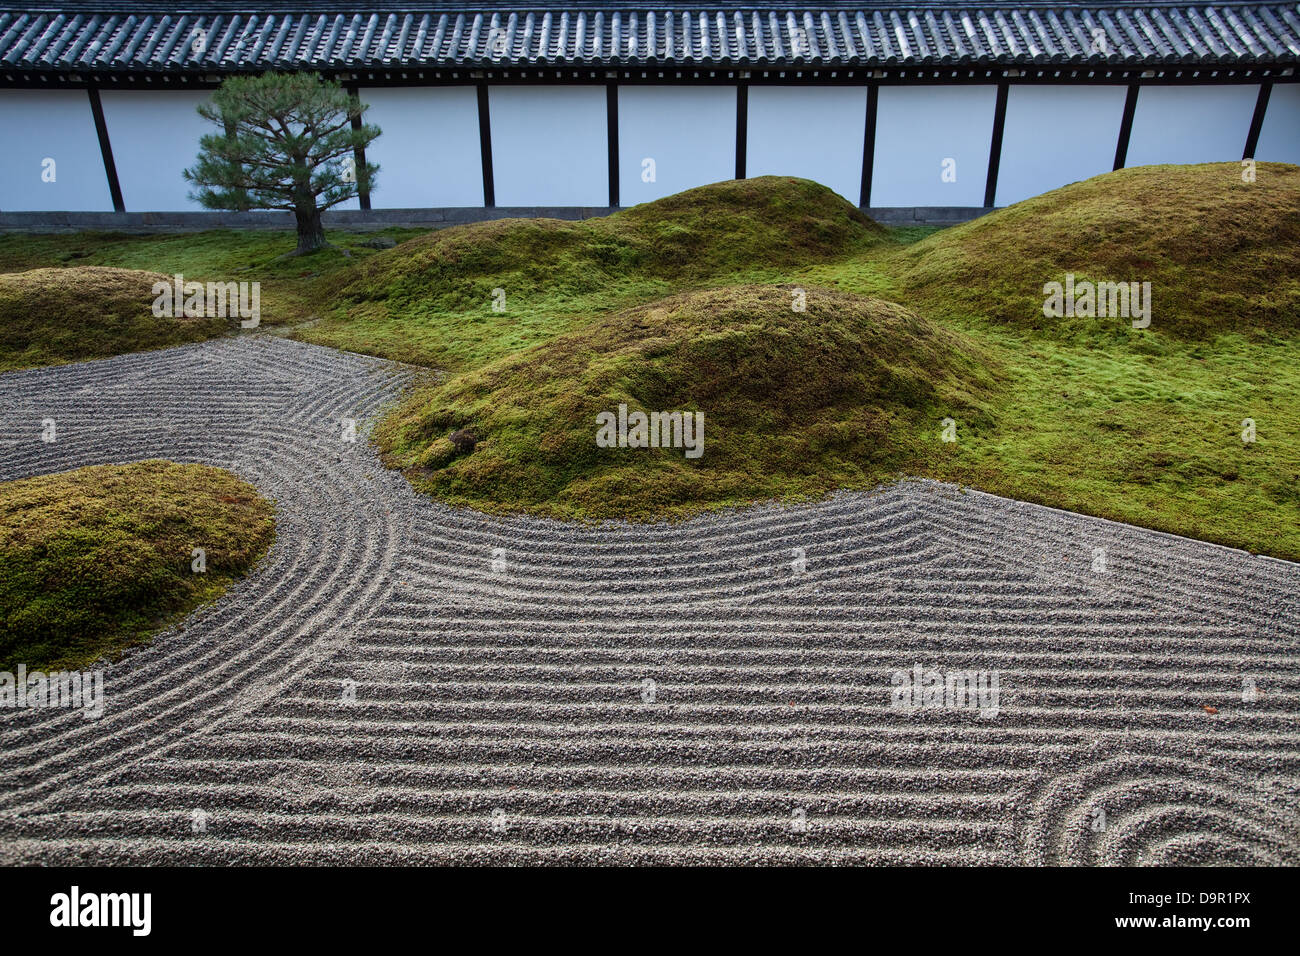 Tofukuji Temple southern garden is composed of rock compositions symbolizing Elysian islands . - Stock Image